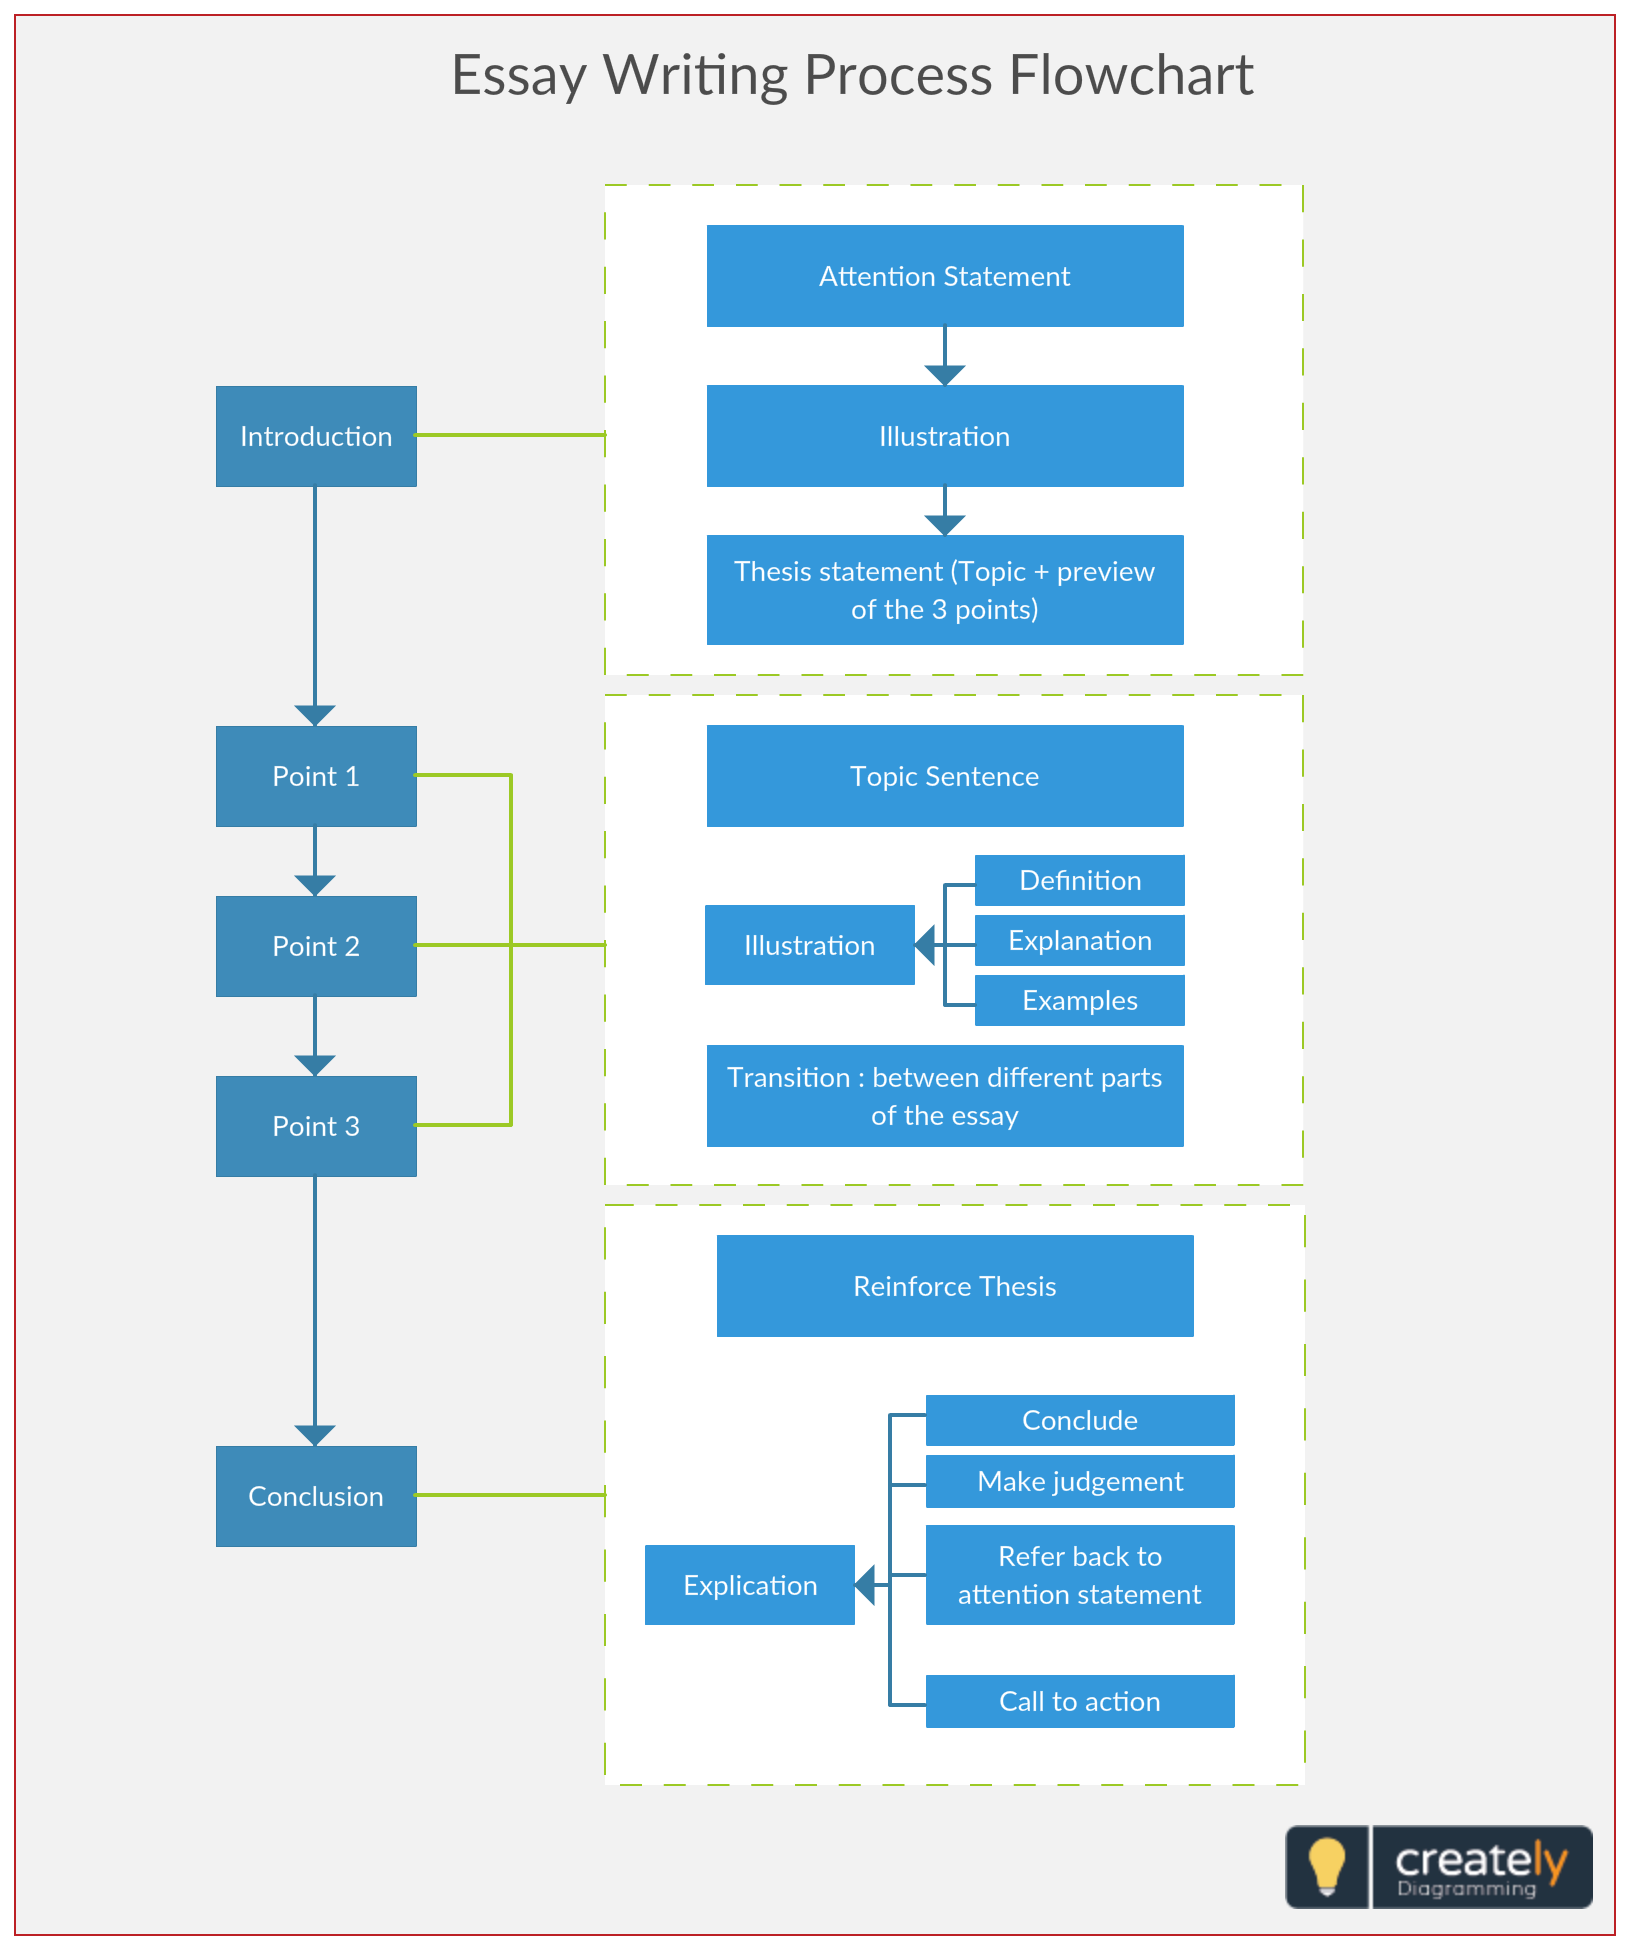 essay writing process flowchart the flowchart below shows the process involved in writing a formal [ 1630 x 1950 Pixel ]